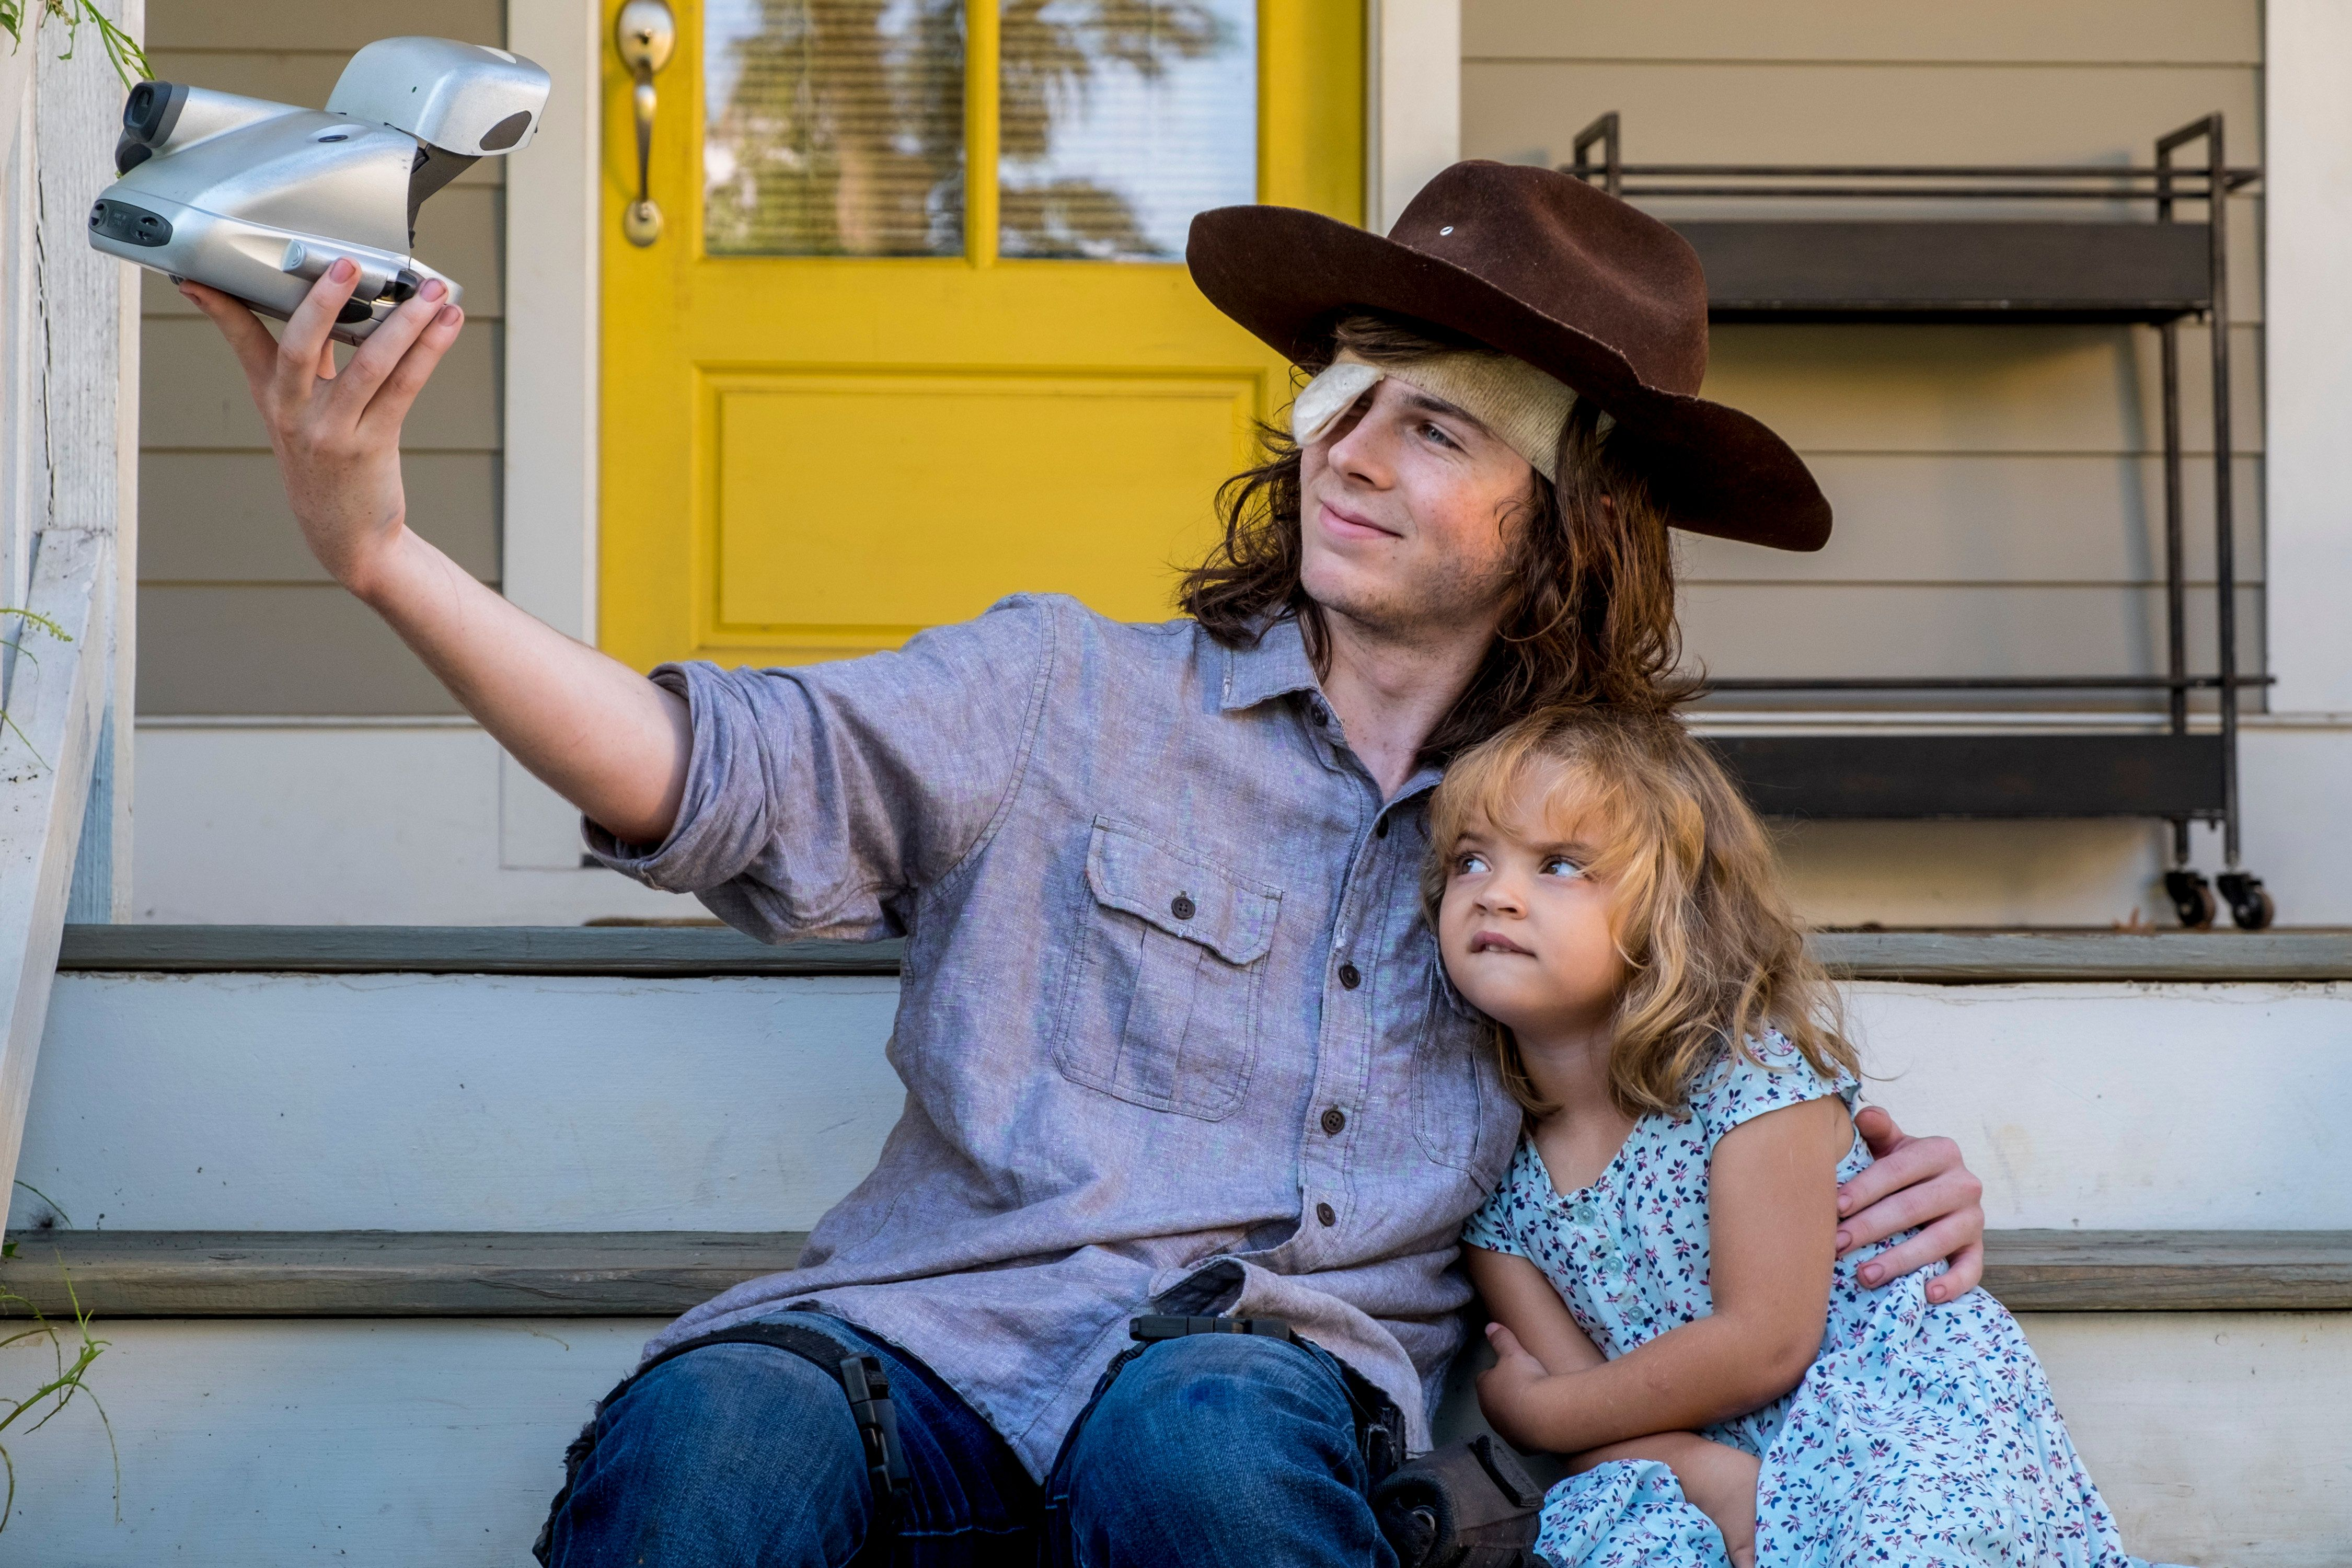 Chandler Riggs as Carl Grimes - The Walking Dead _ Season 8, Episode 9 - Photo Credit: Gene Page/AMC